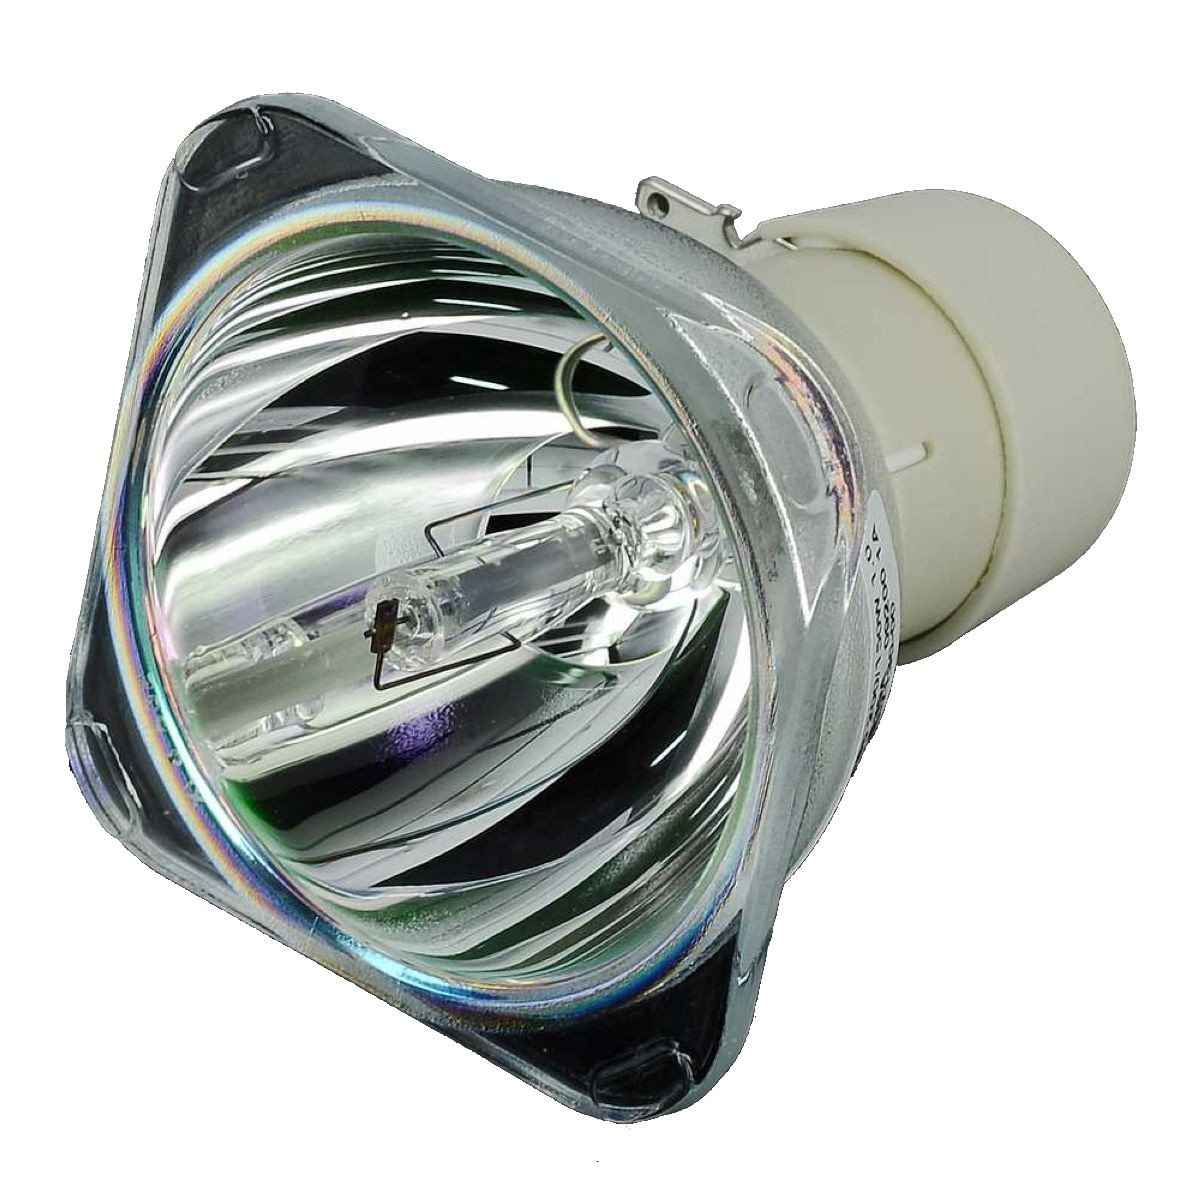 Original Projector bulb 5J.JA105.001 lamp for BENQ Projector MS511h MS521 MW523 MX522 TW523 bulb without housing free shipping<br><br>Aliexpress